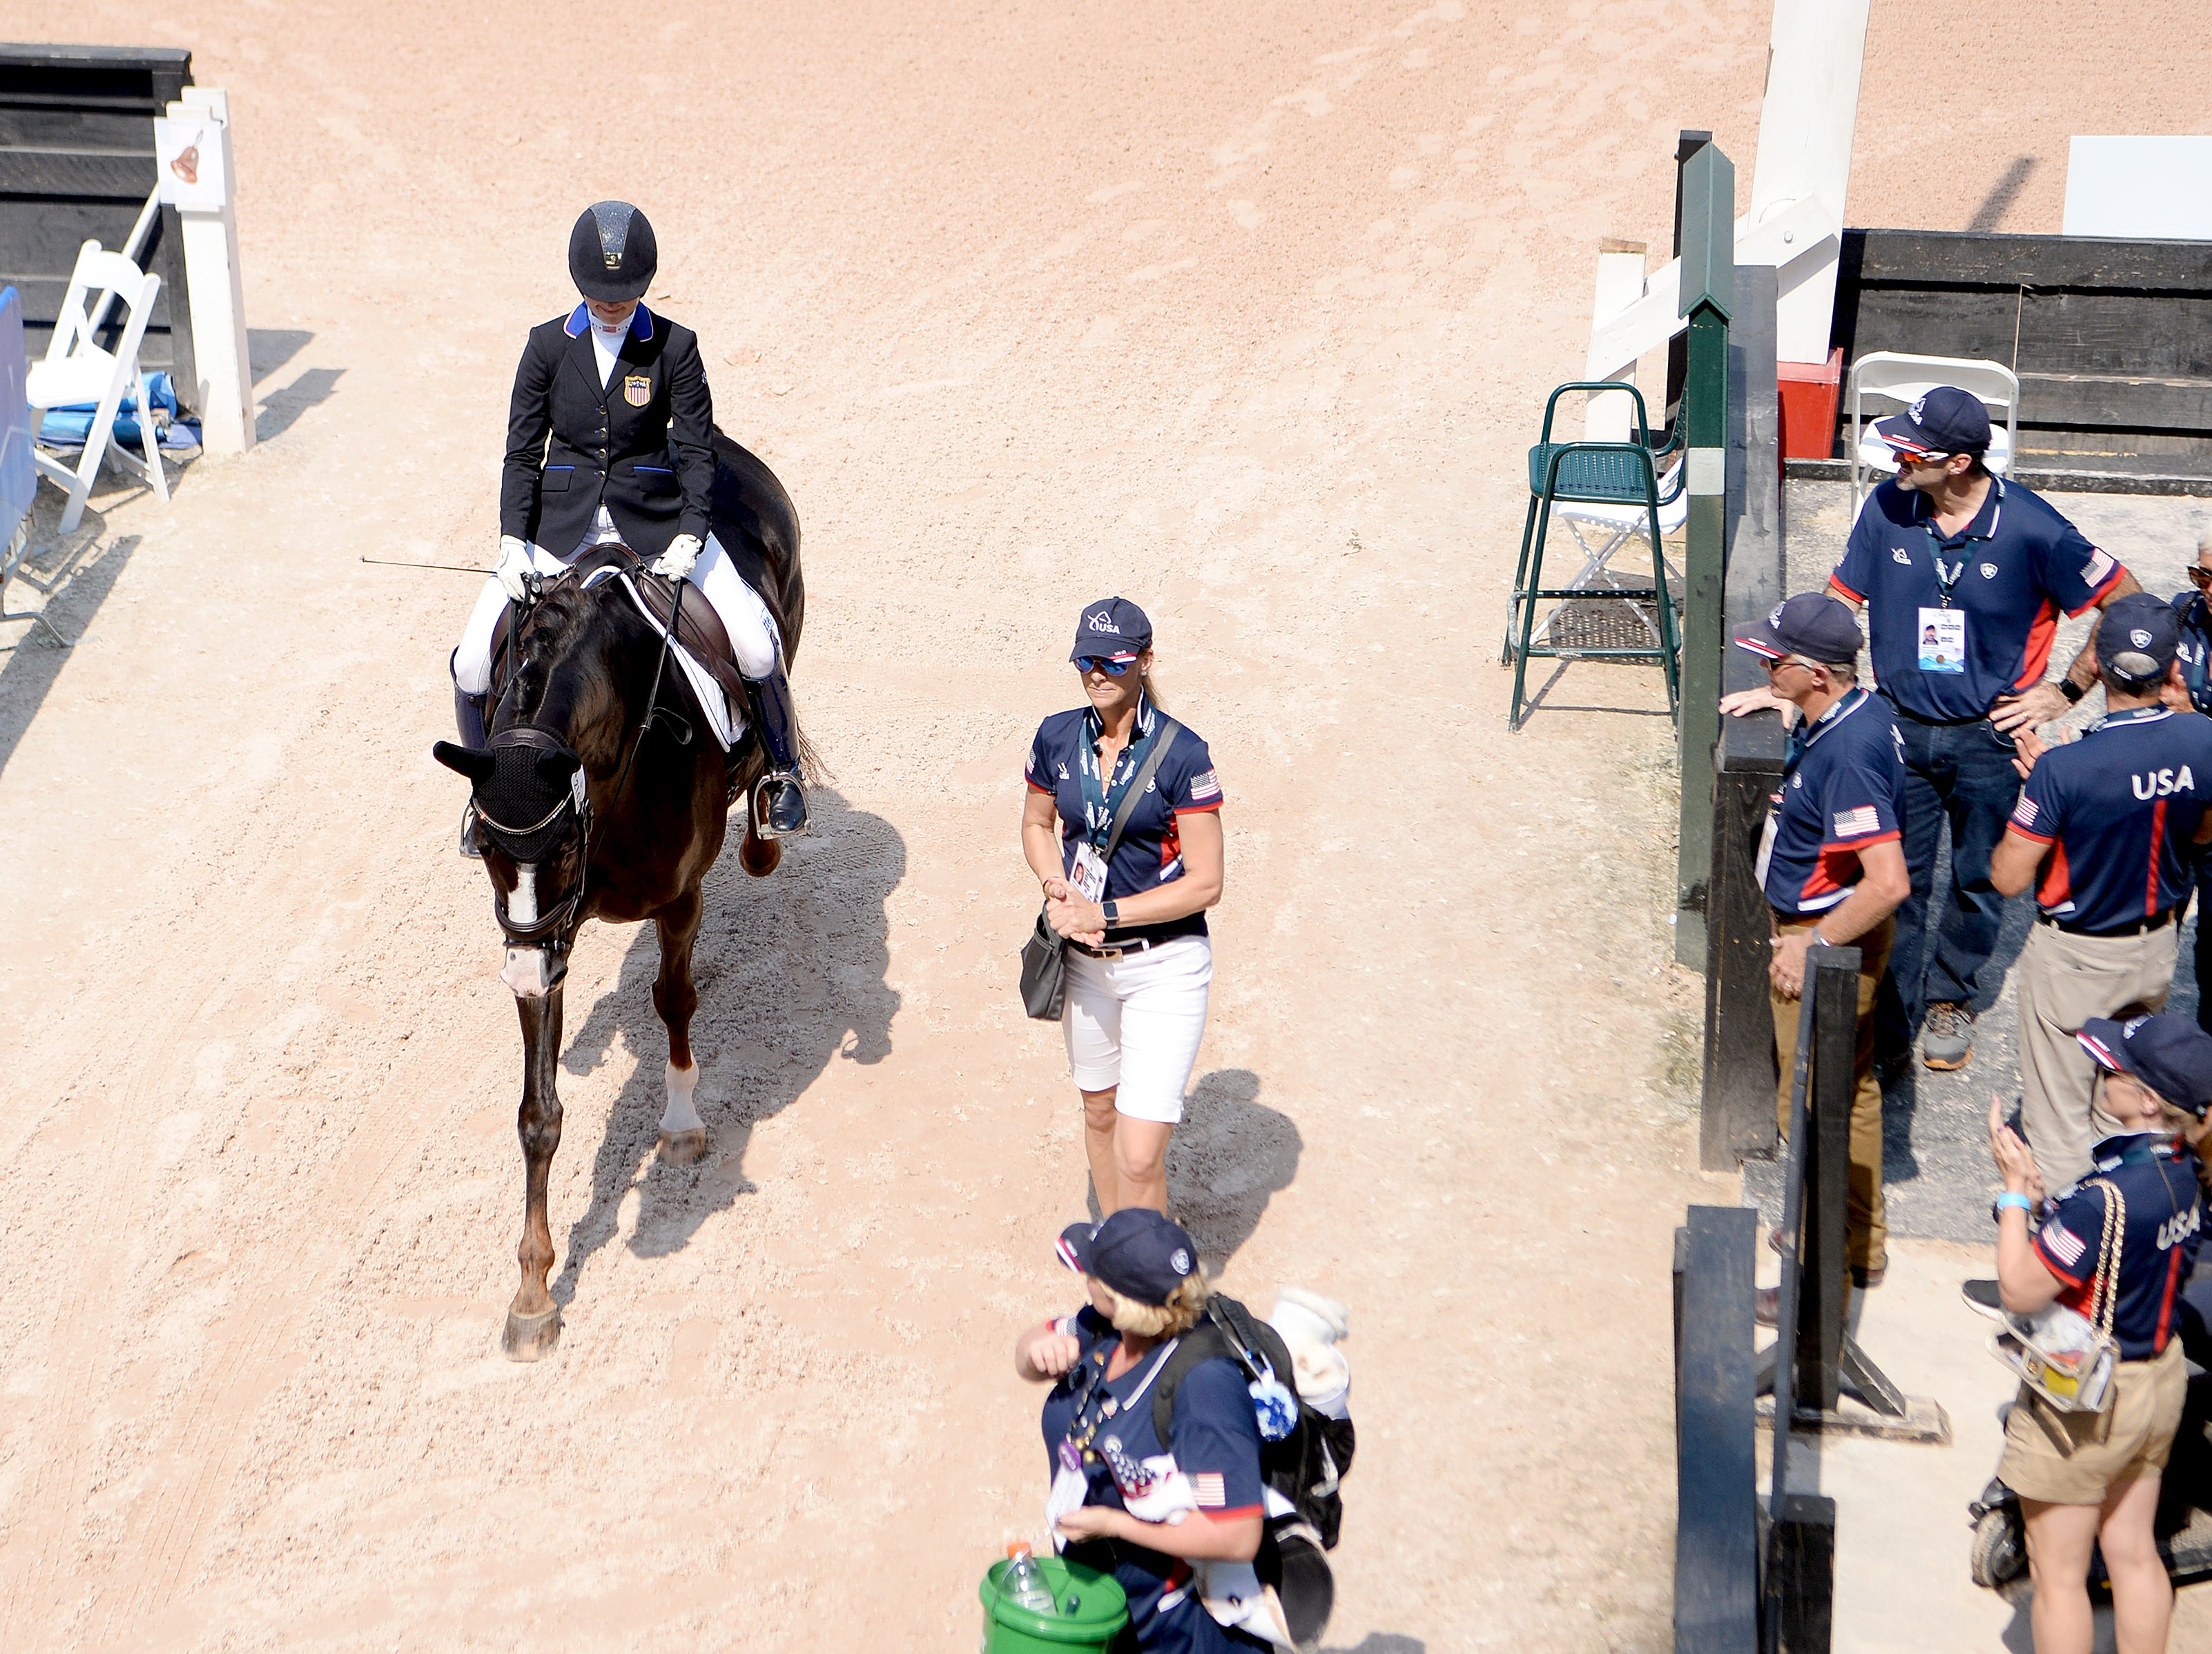 American Angela Peavy is applauded by teammates, trainers and supporters after her performance in the Para-dressage event of the FEI World Equestrian Games at the Tryon International Equestrian Center on Sept. 20, 2018.